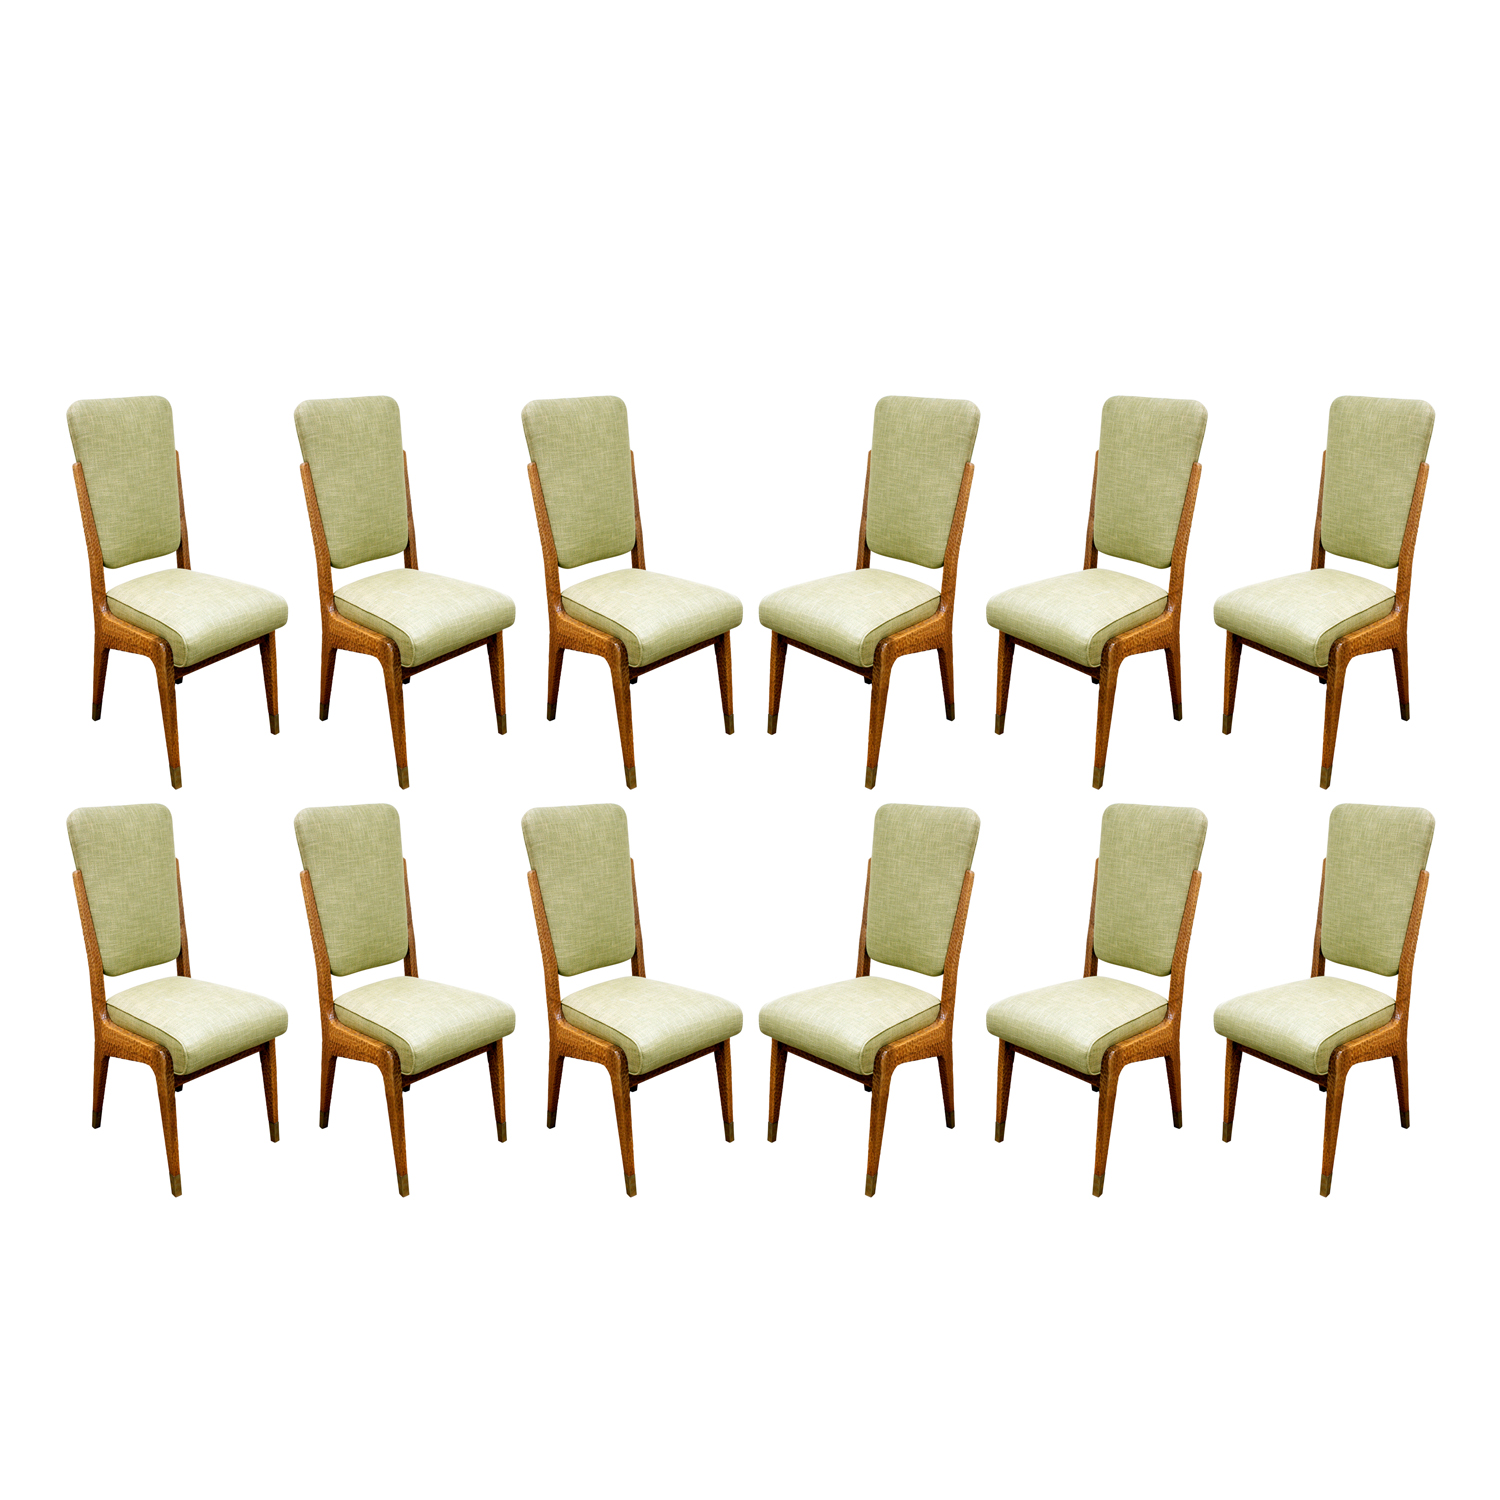 Buffa 350 setof12 brass sabot diningchairs182 man.jpg